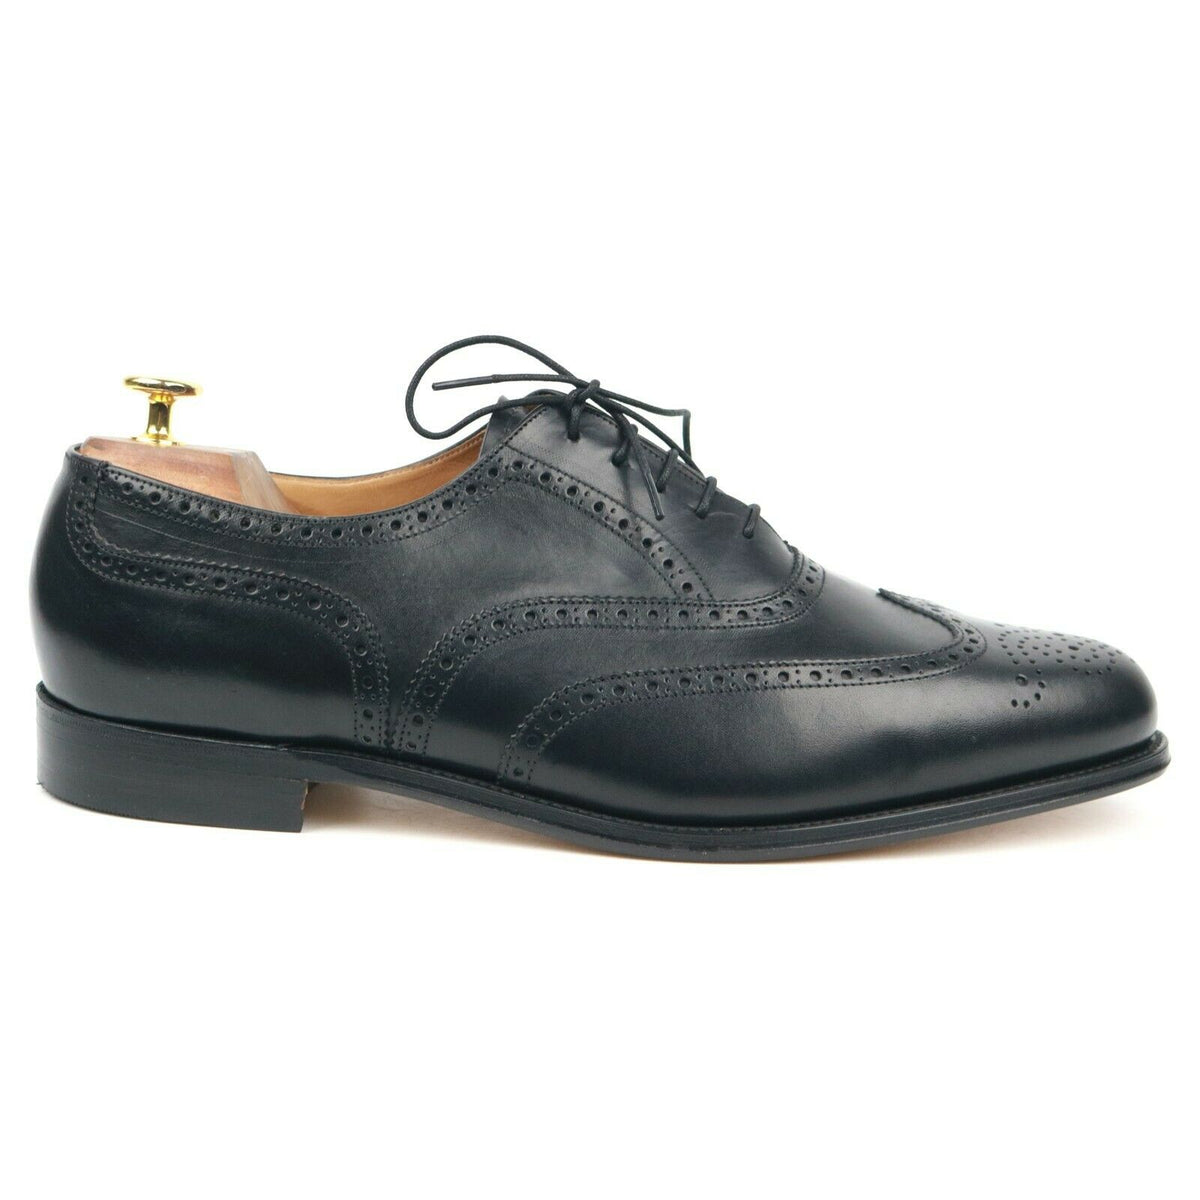 Gieves & Hawkes X Alfred Sargent Black Leather Brogues UK 12 F